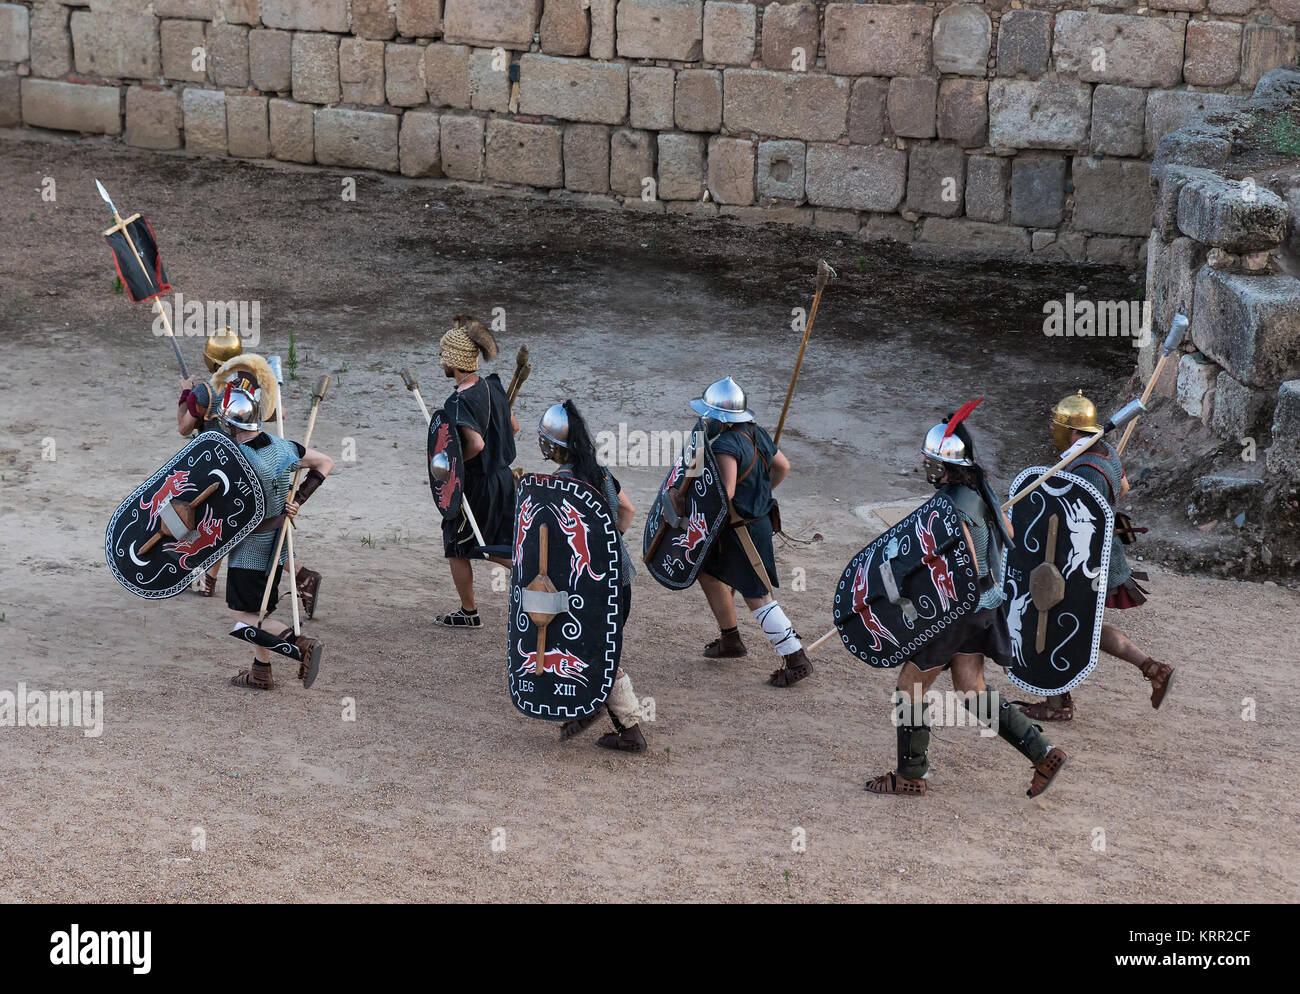 Mérida, Spain - June 19, 2015:  Several people dressed in the costume of ancient Celtic warrior in the first - Stock Image